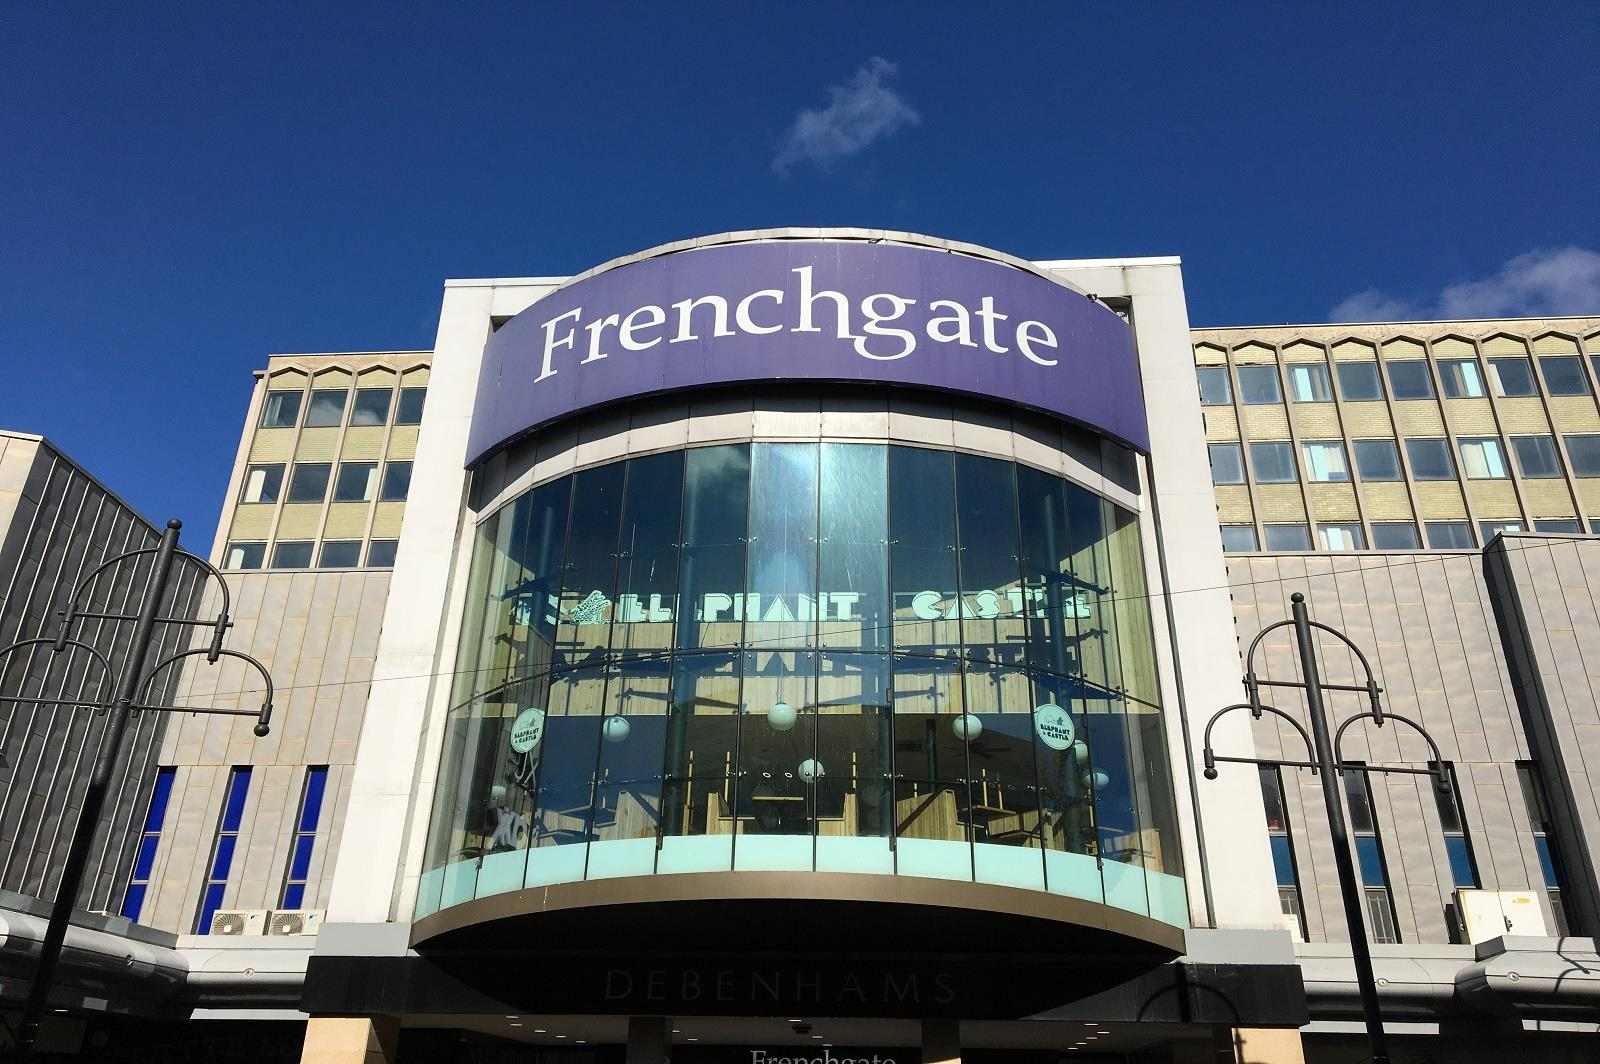 Frenchgate Centre, St Sepulchre Gate, Doncaster, South Yorkshire